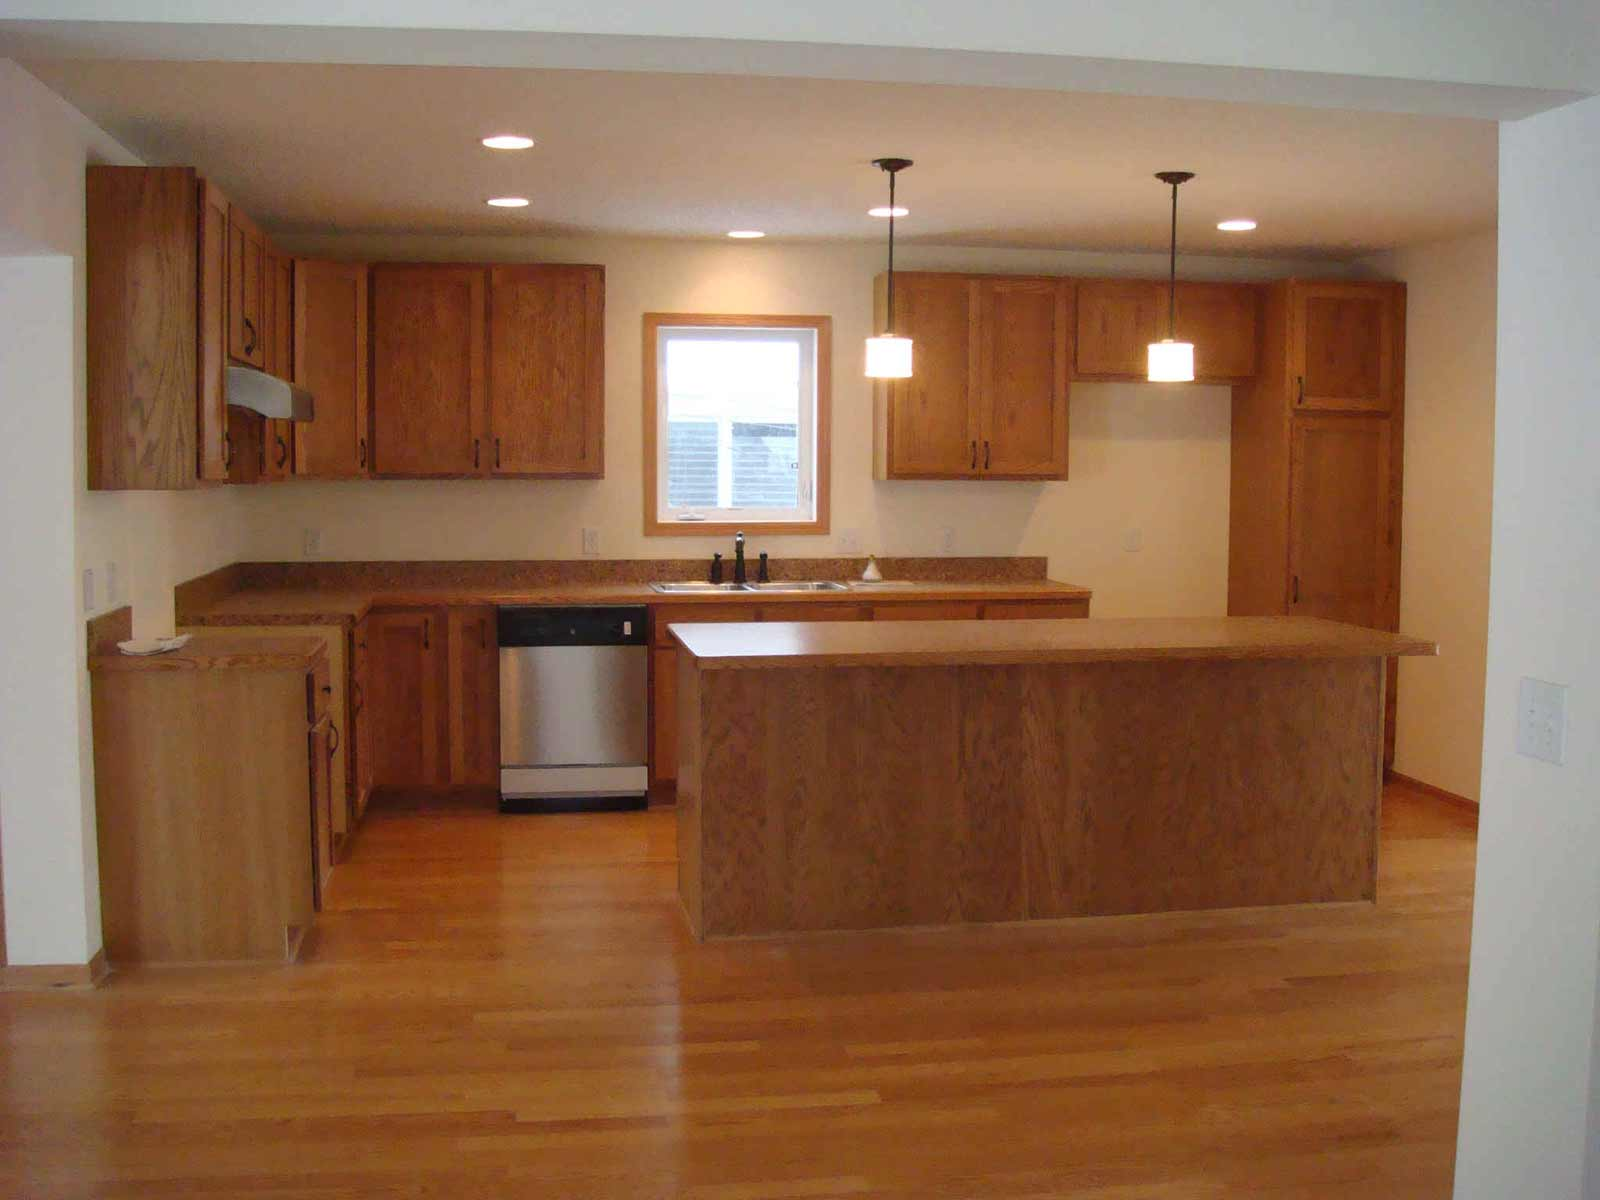 Wonderful Best Hardwood Floor for Kitchen 1600 x 1200 · 67 kB · jpeg